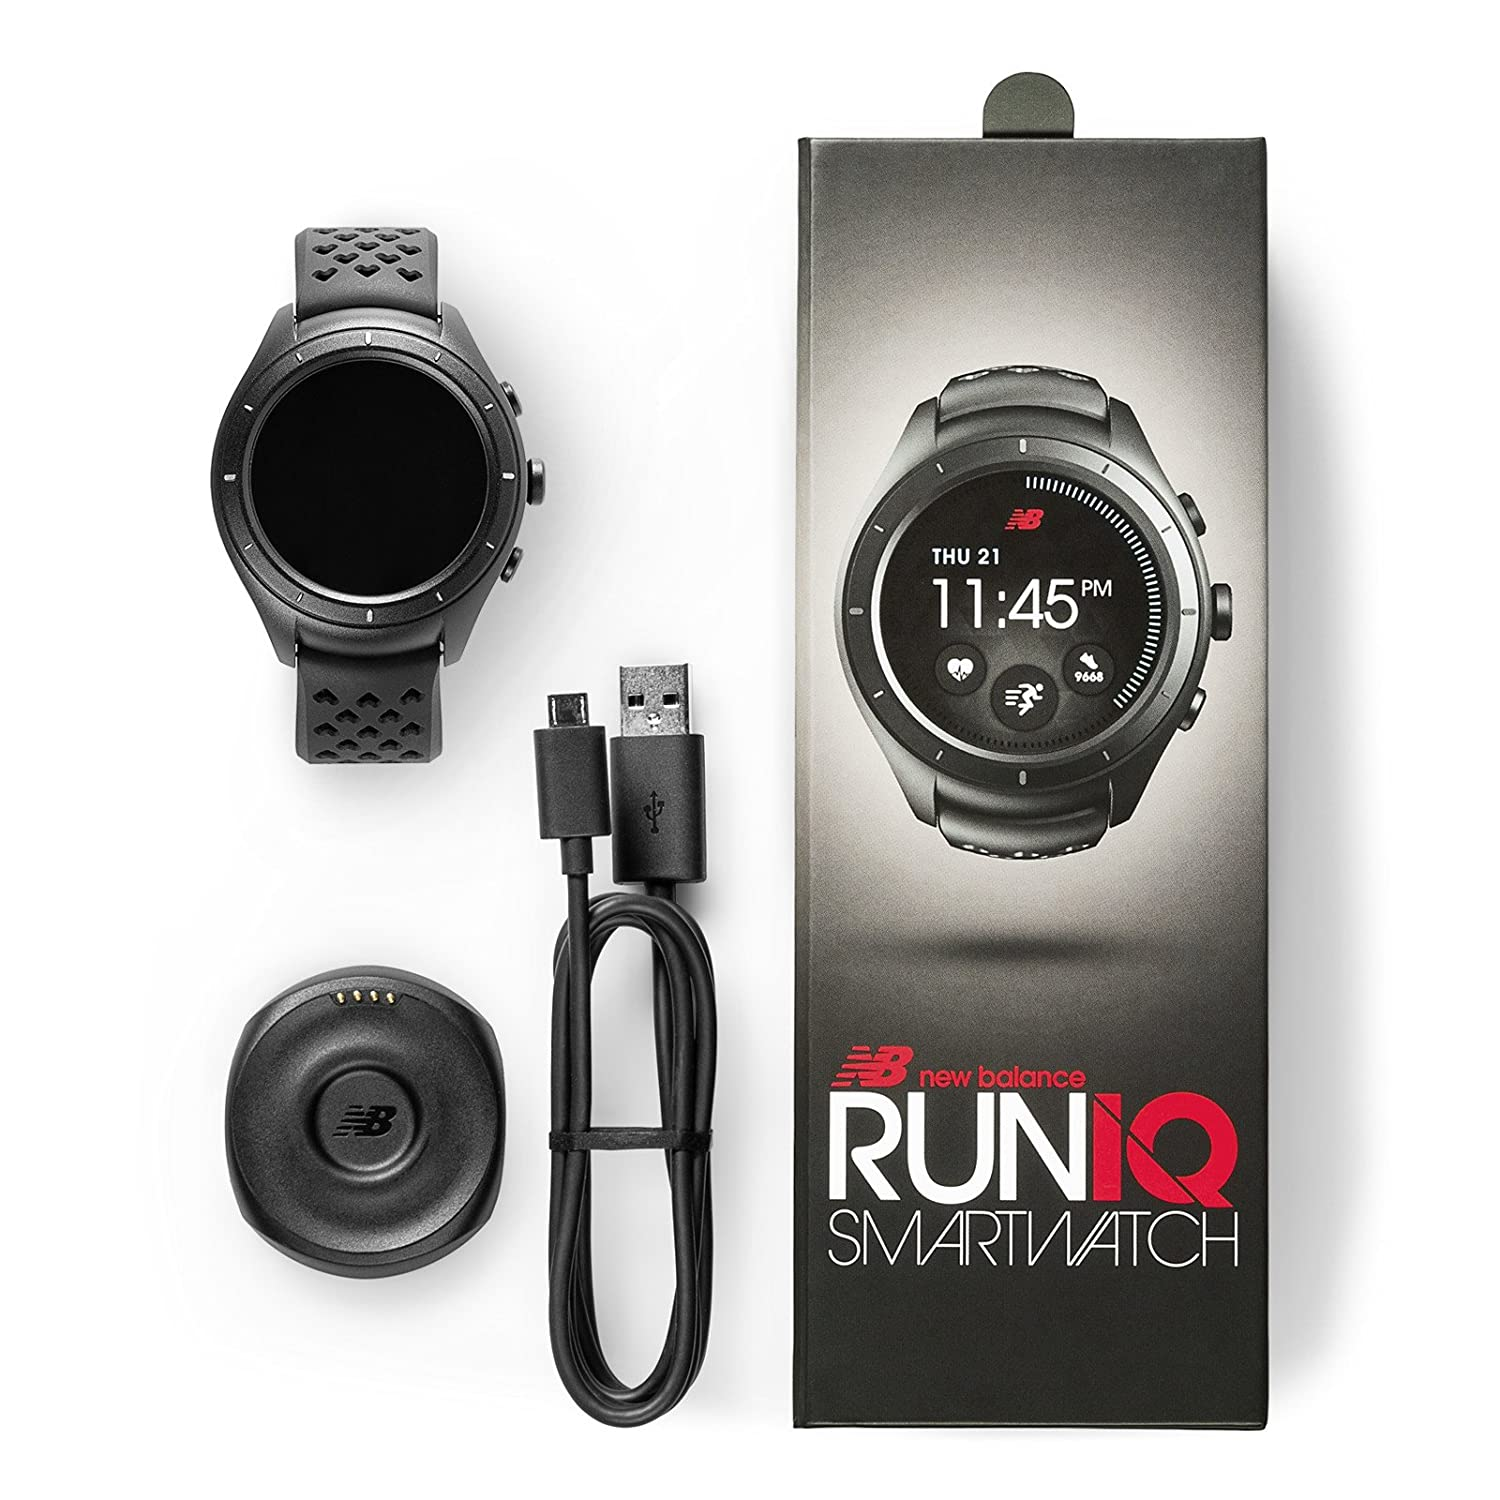 New Balance RunIQ Smartwatch, Silver, One Size